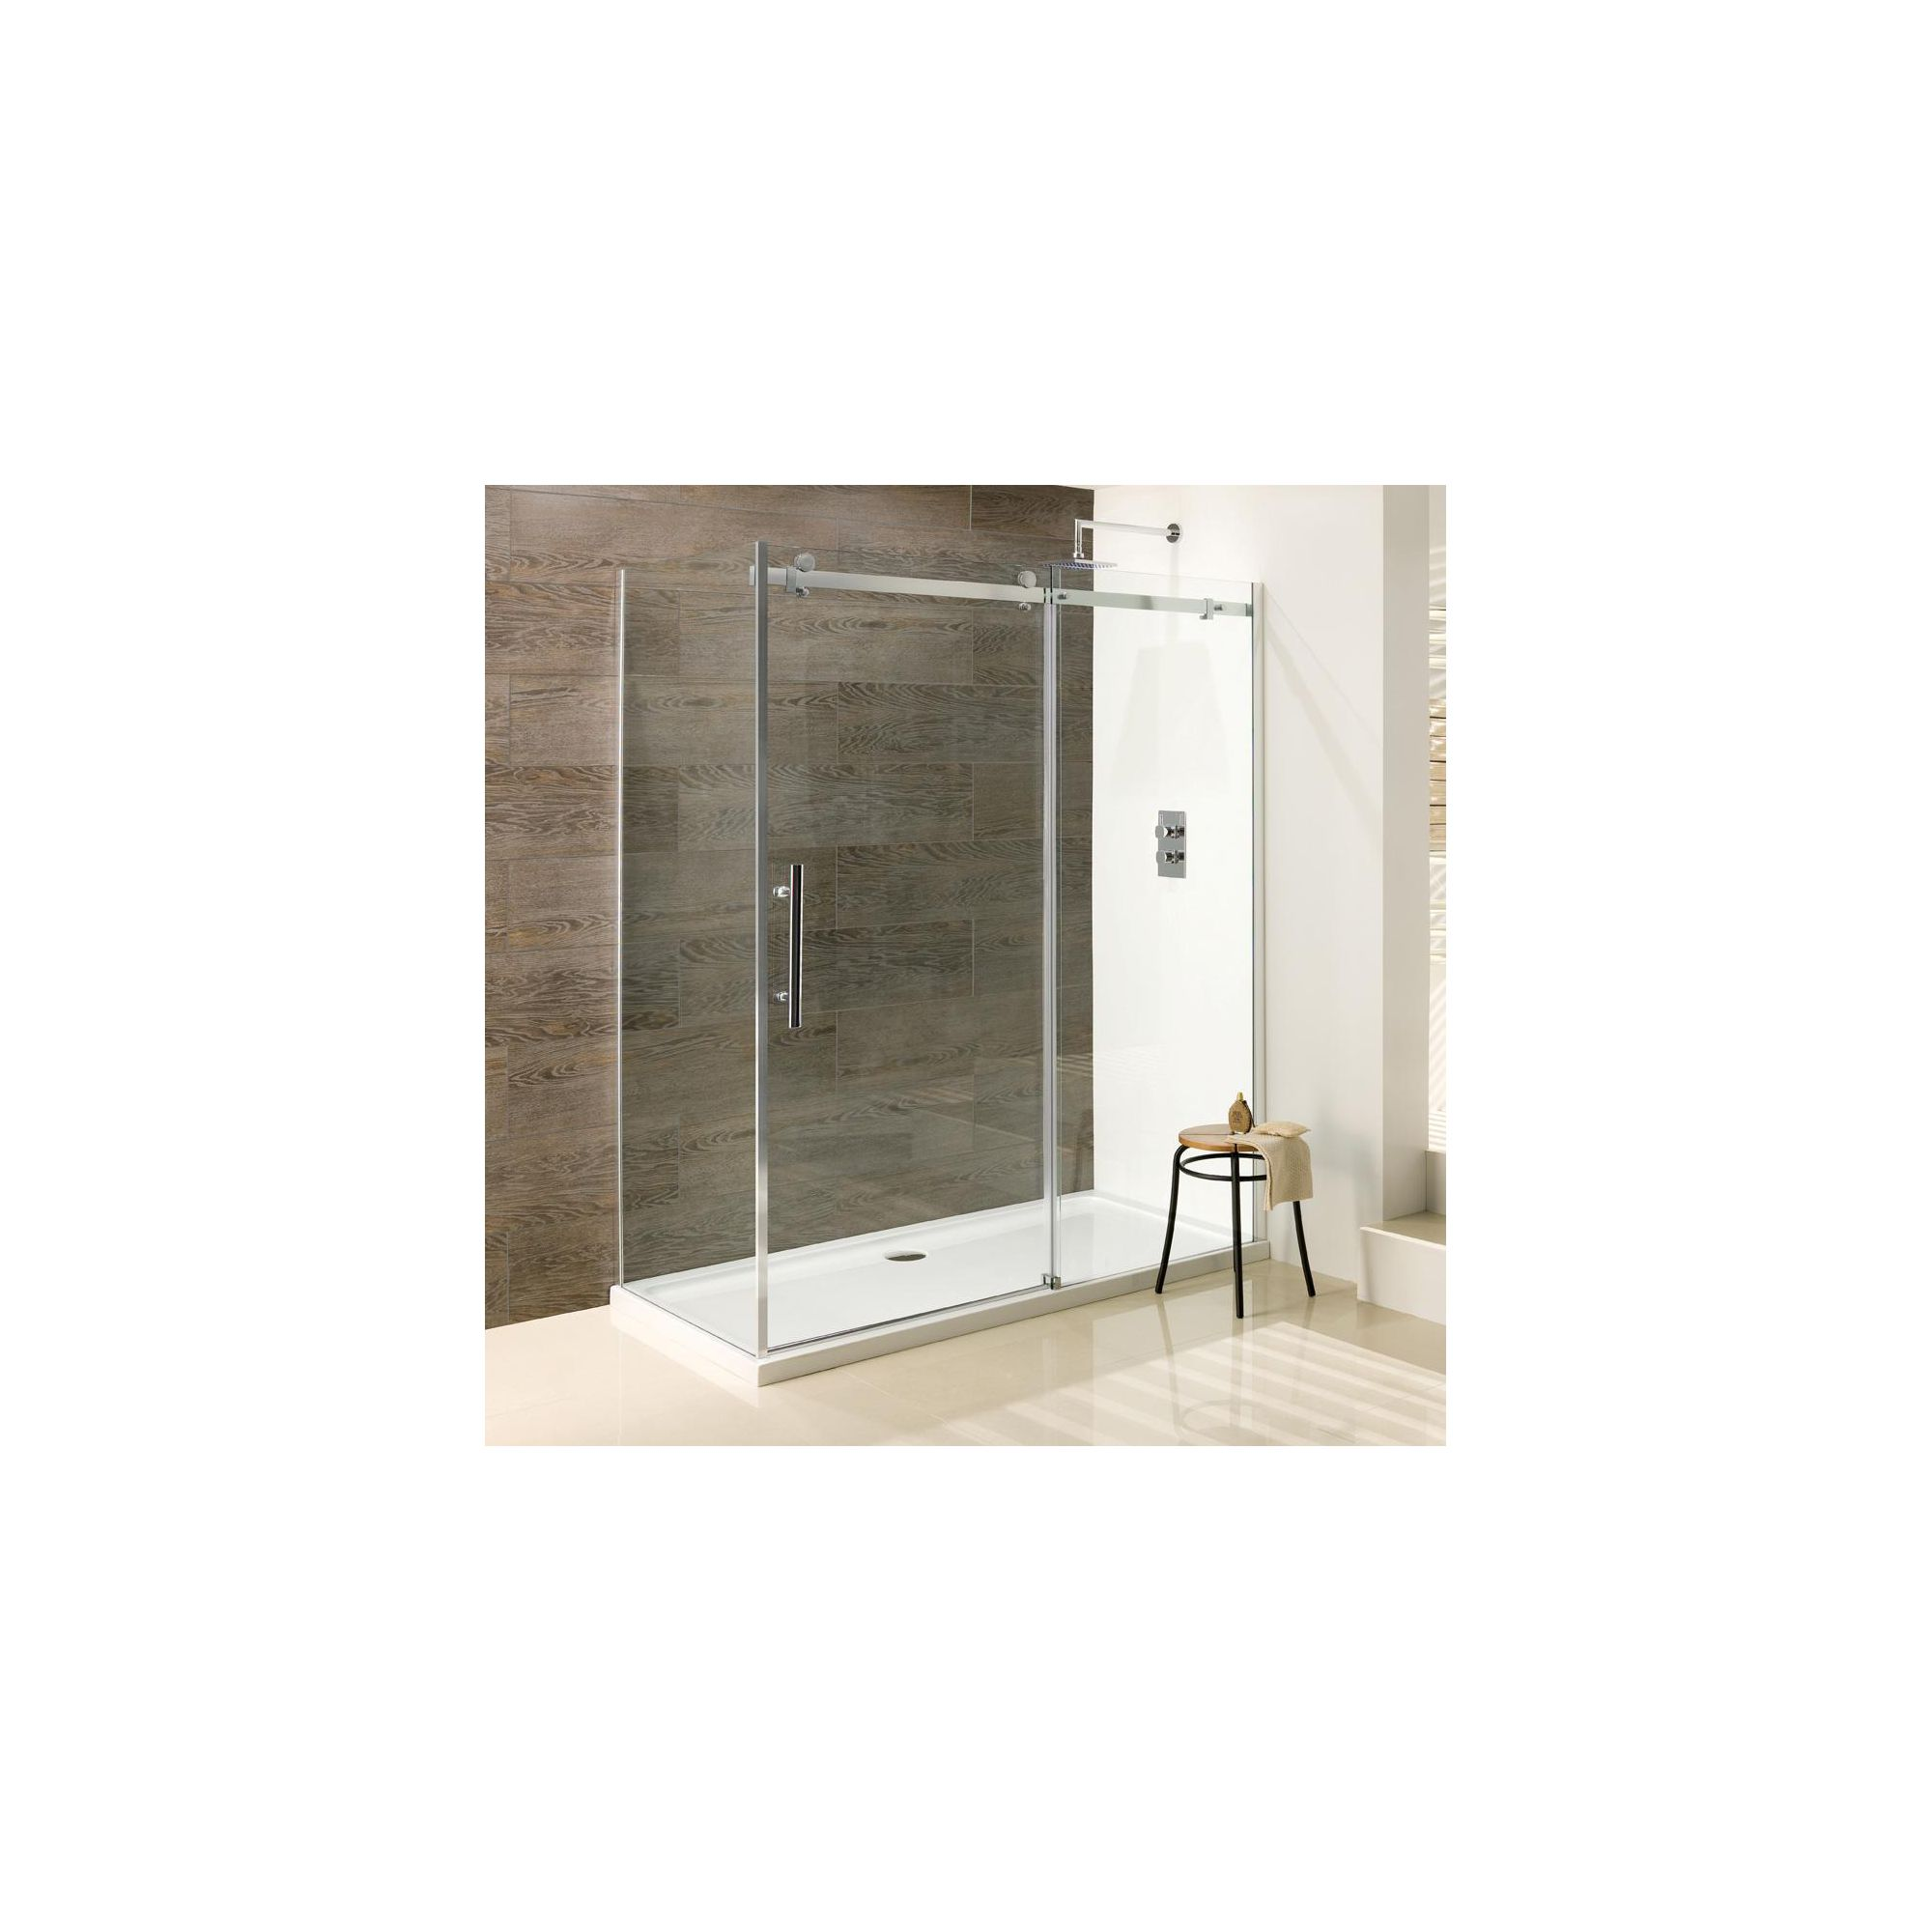 Duchy Deluxe Silver Sliding Door Shower Enclosure with Side Panel 1700mm x 760mm (Complete with Tray), 10mm Glass at Tesco Direct